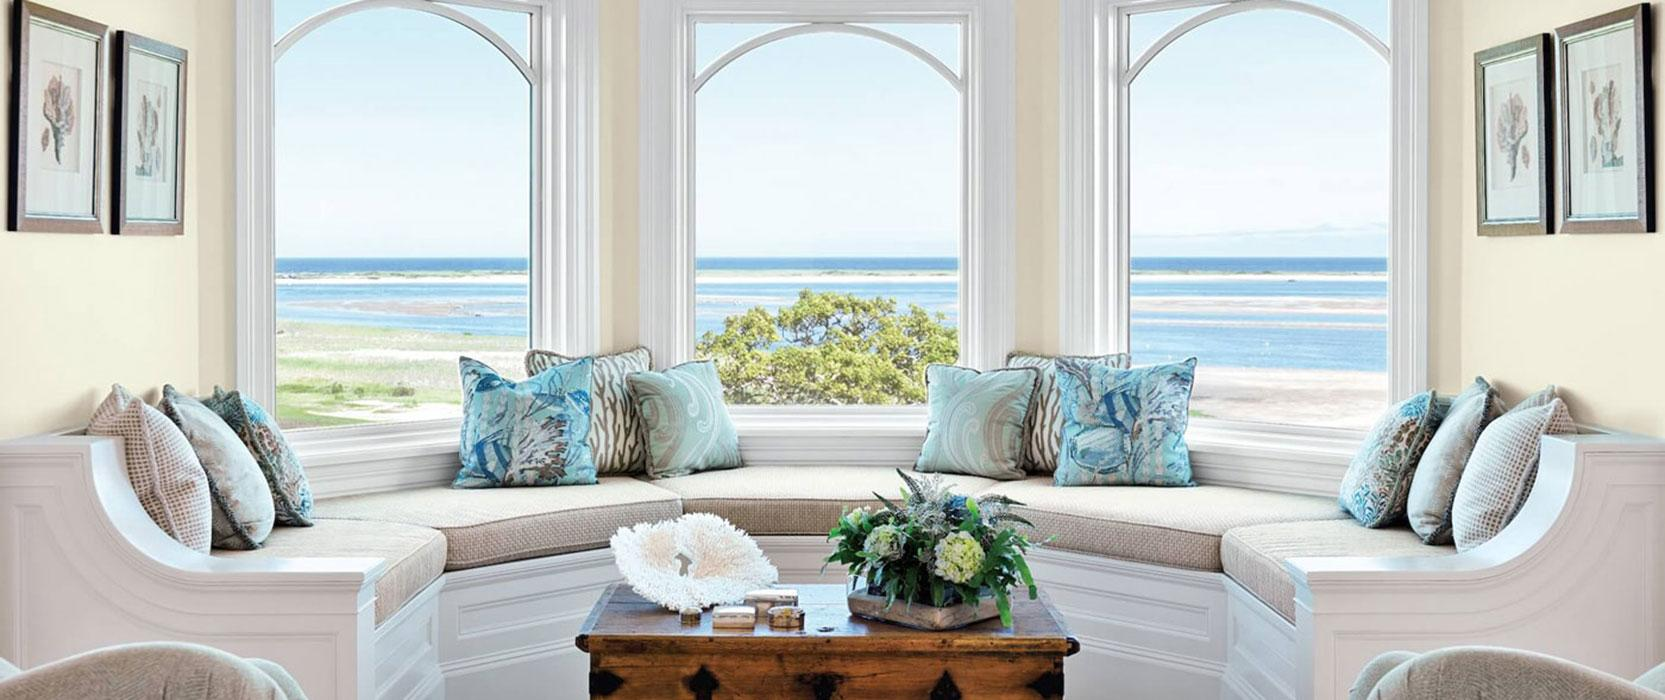 Window seat with custom upholstered pillows in a bay window with a view of the water